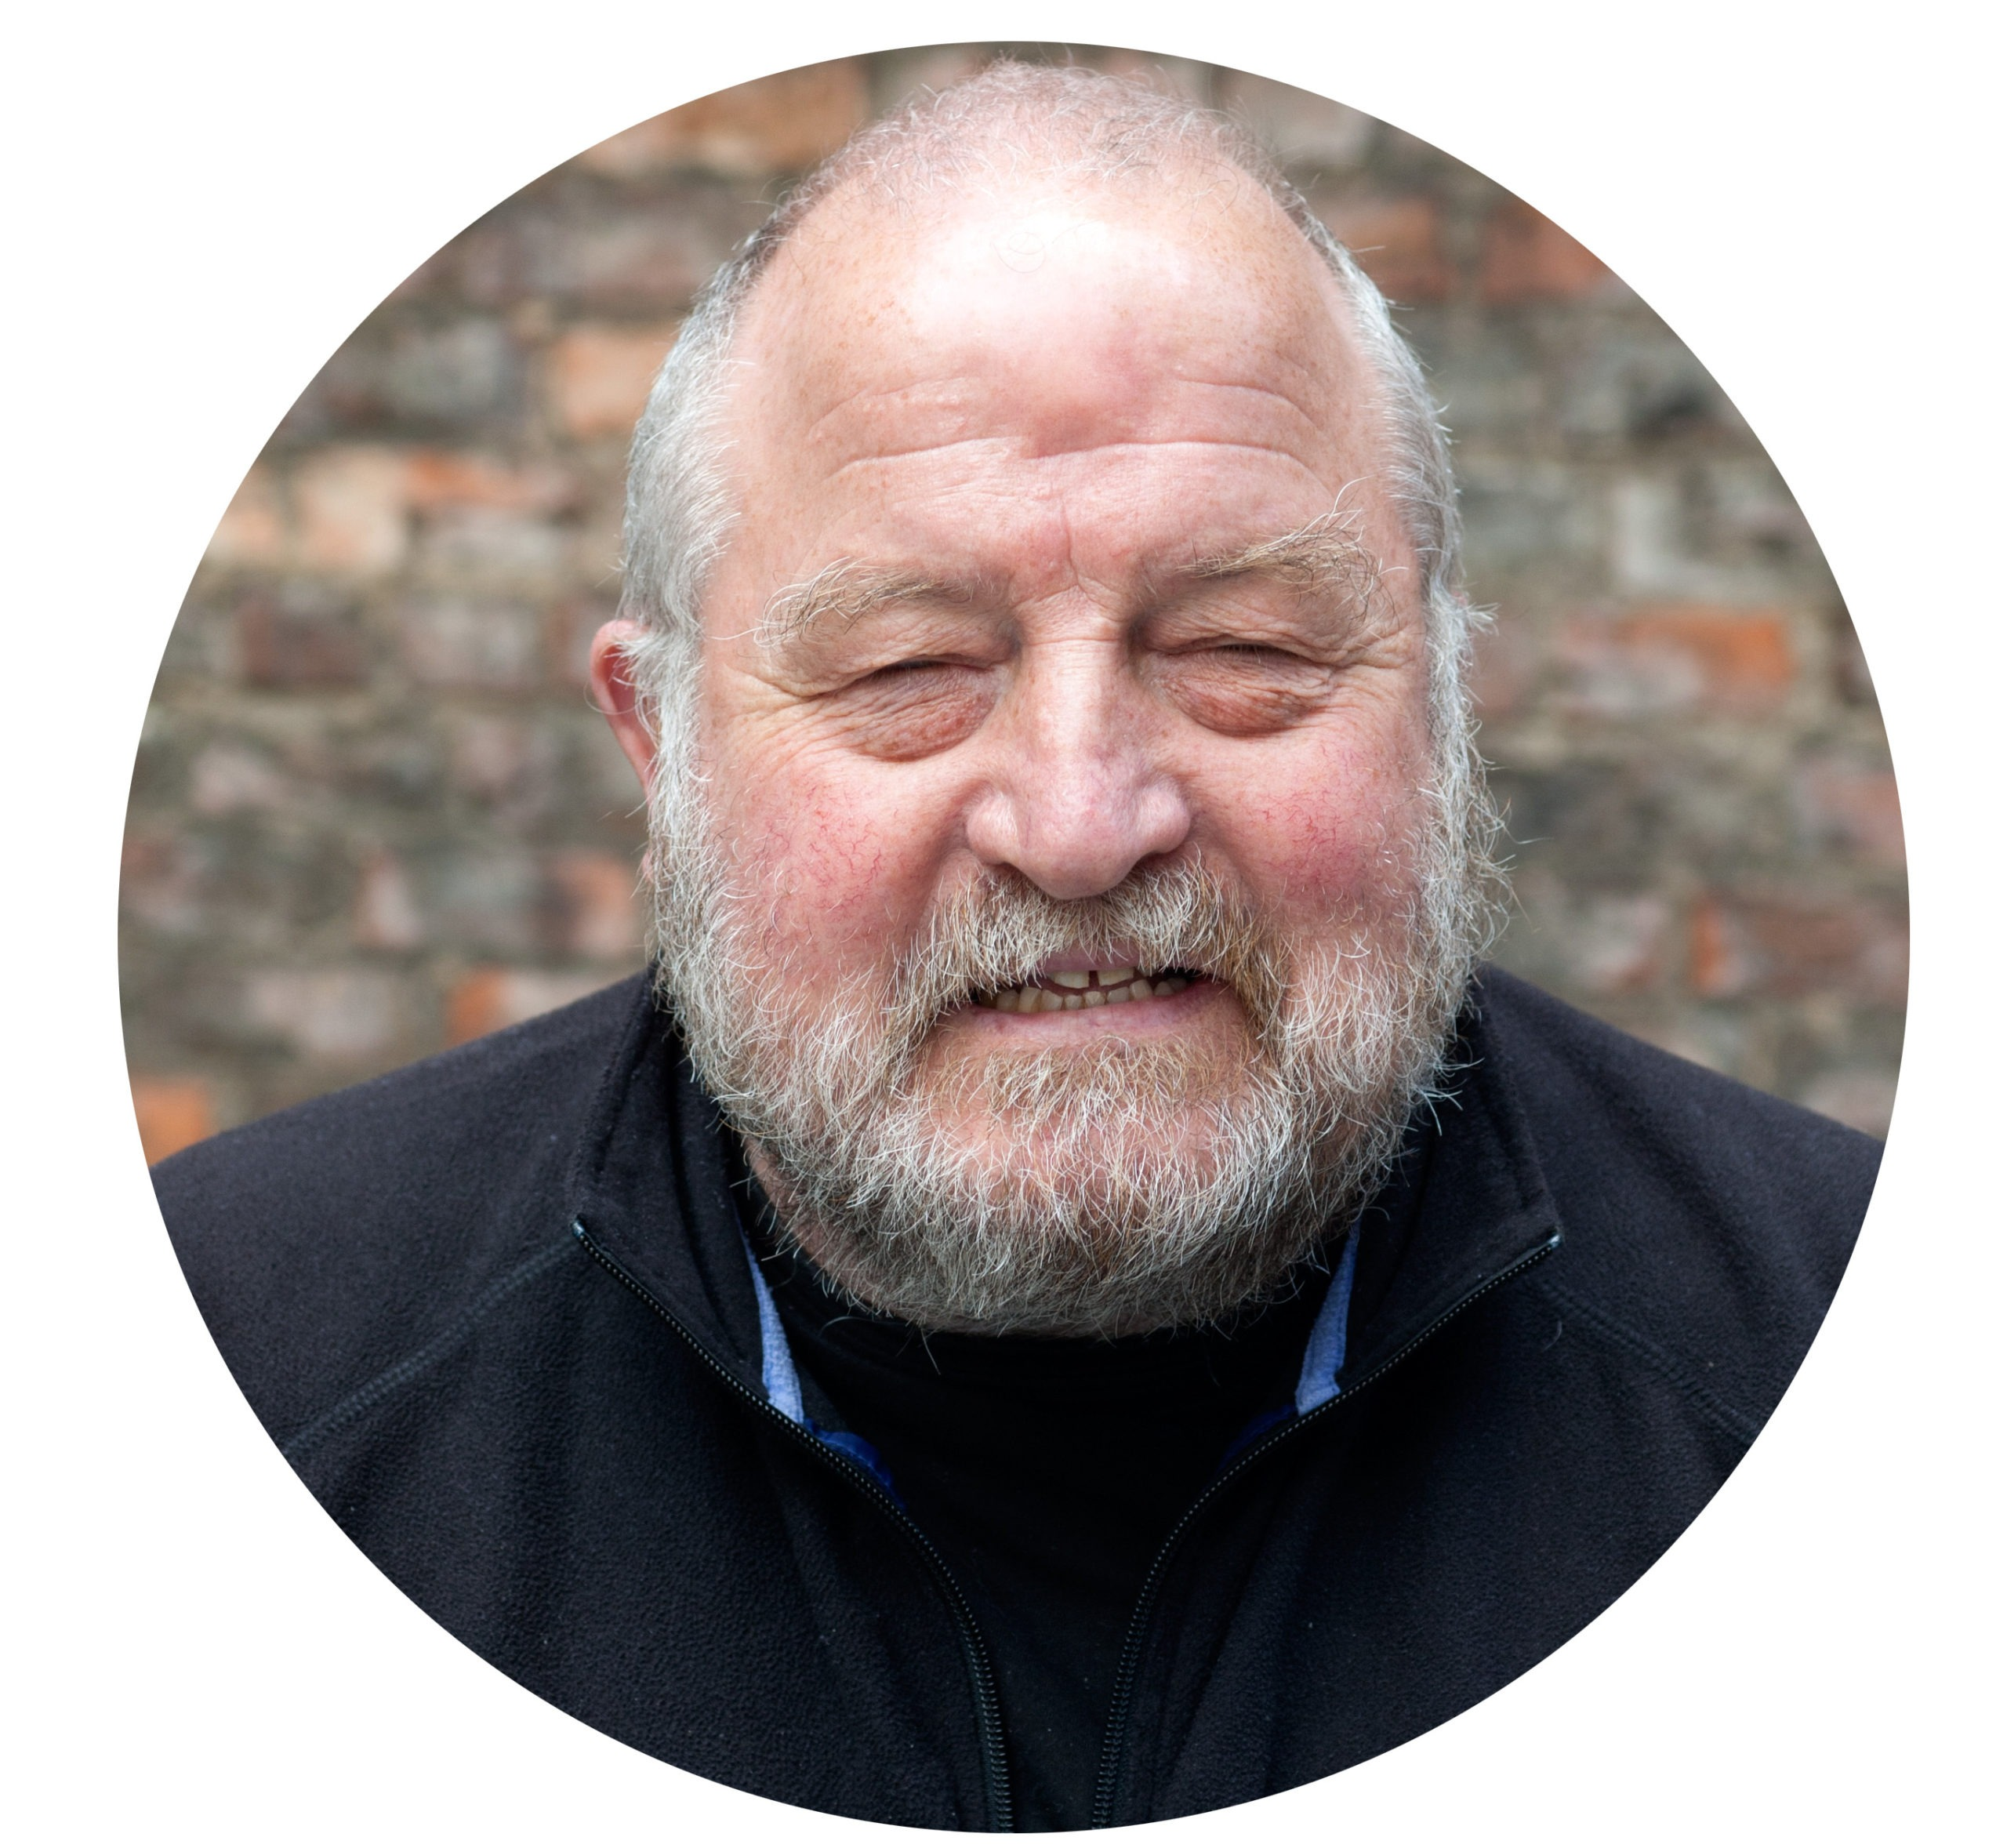 Action Towards Inclusion - Mick's Story